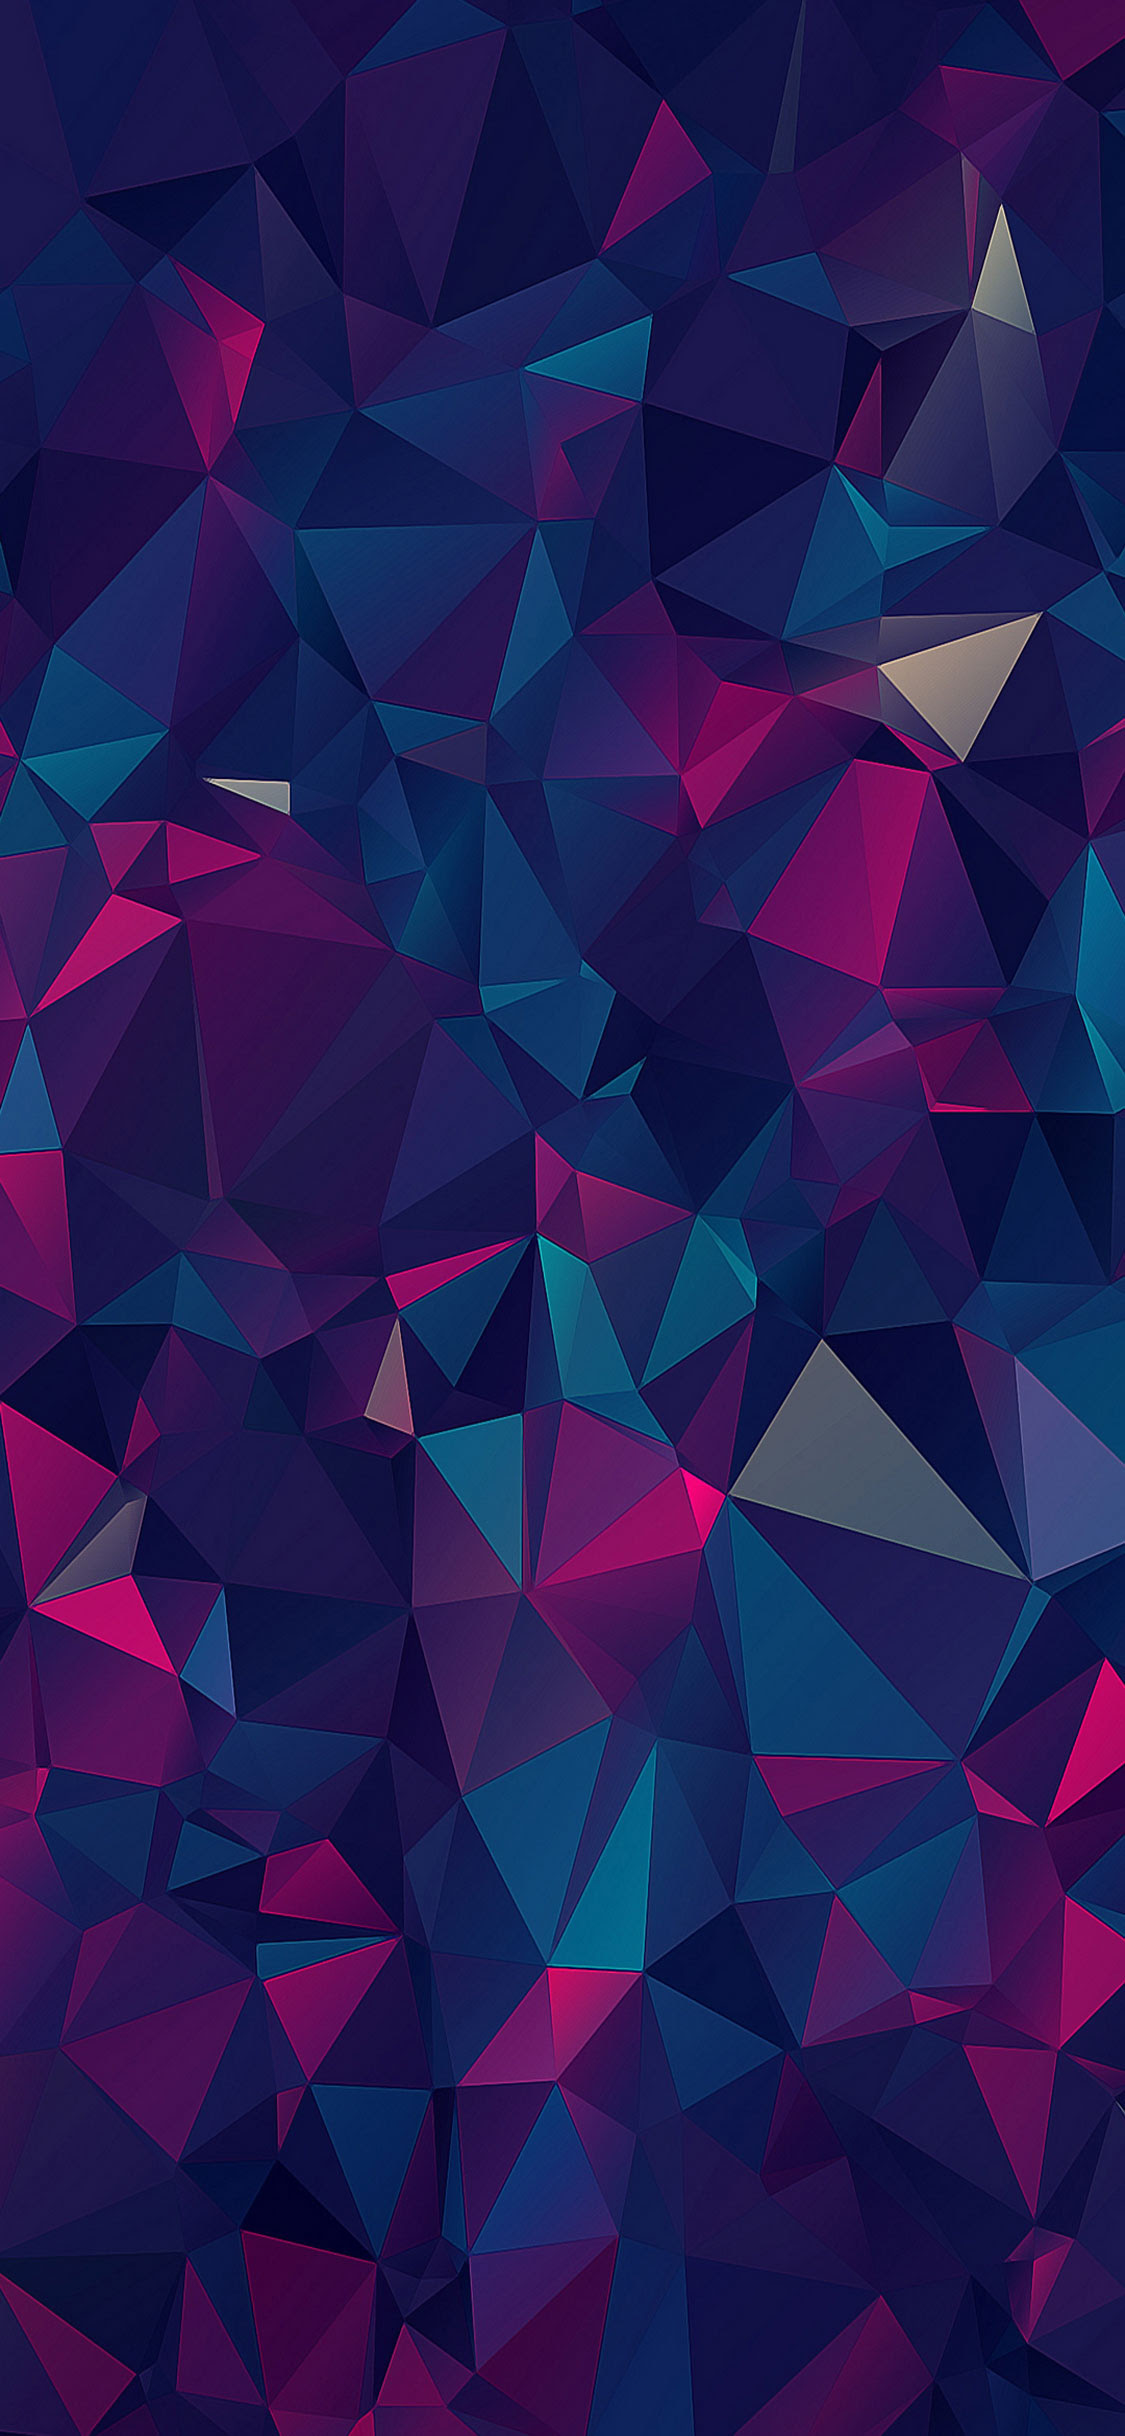 30  New Cool iPhone X Wallpapers \u0026 Backgrounds to freshen up your screen